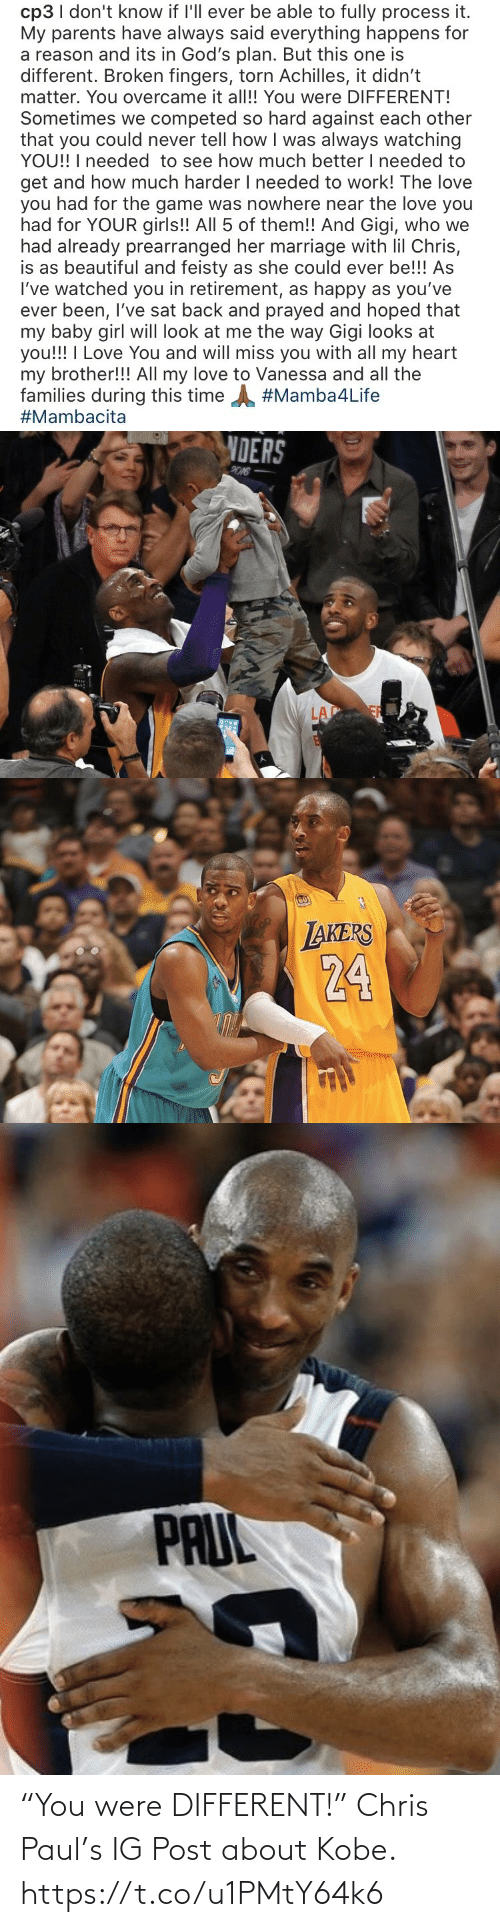 """Chris Paul: """"You were DIFFERENT!""""  Chris Paul's IG Post about Kobe. https://t.co/u1PMtY64k6"""